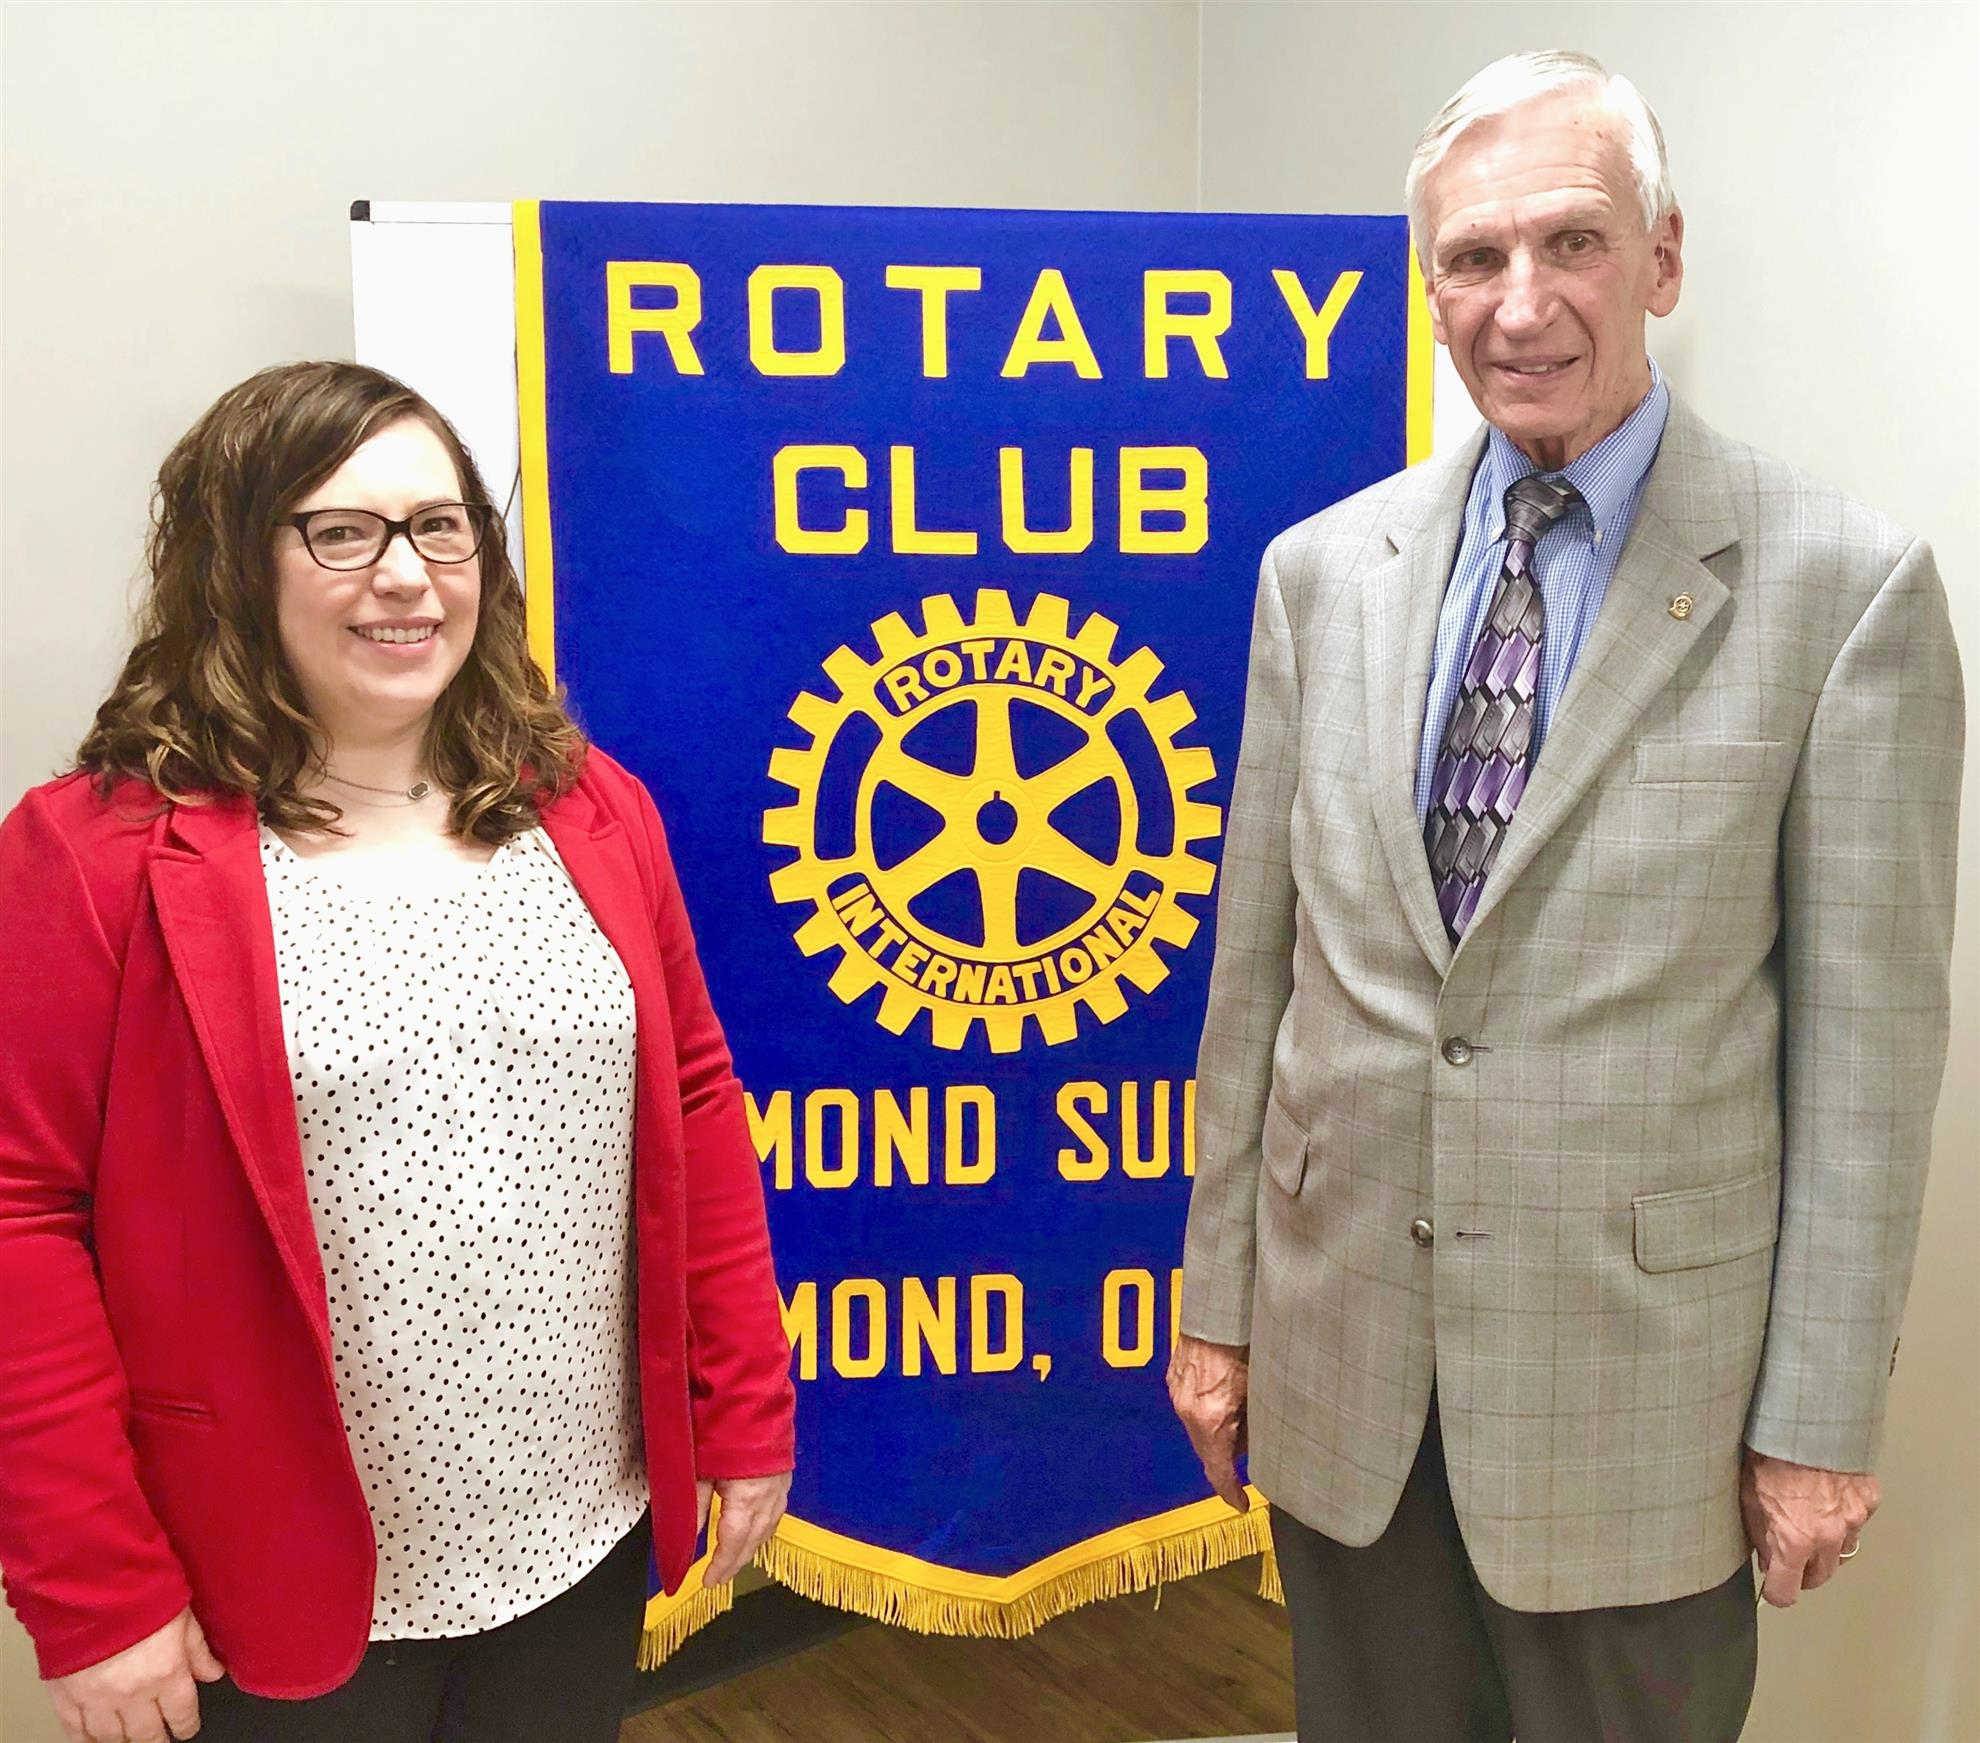 ddaafdd1b5b8 Our speaker at the JUNE 11TH meeting was Andrea Stone, pictured at left  with Rotarian of the day, Roland Herwig. Andrea is a spokesman for Moms  Demand ...